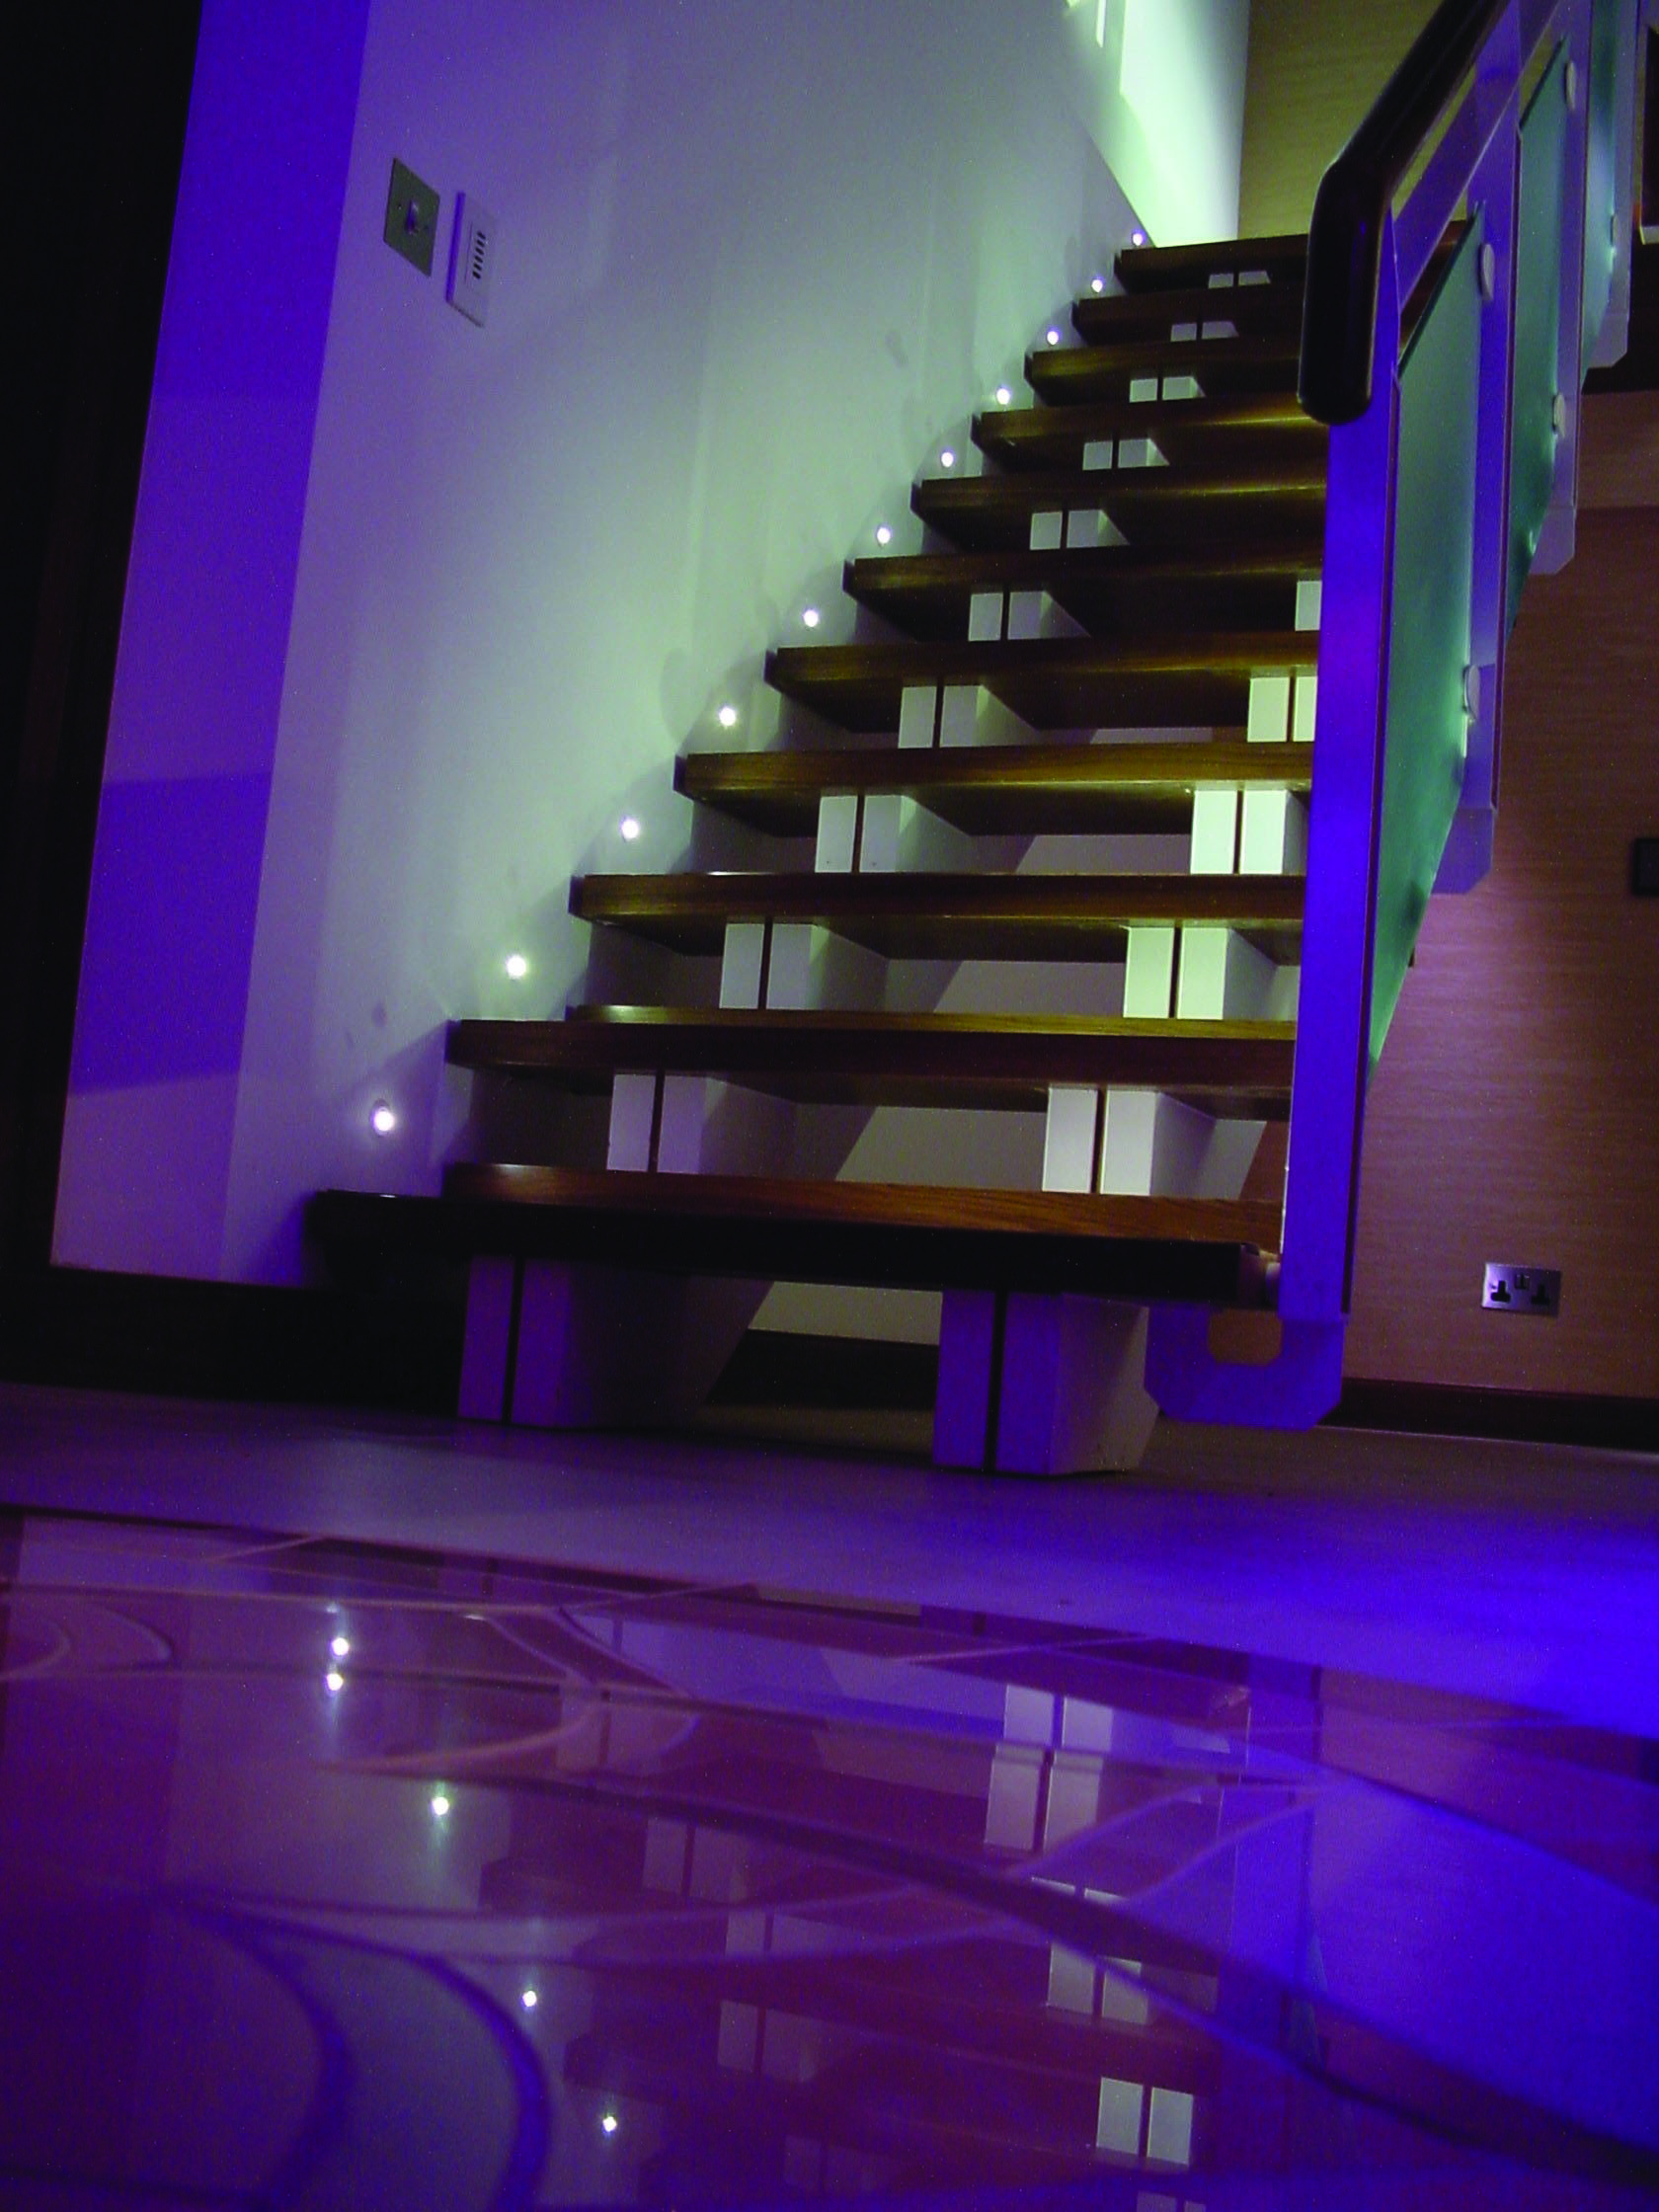 Eclairage Led Escalier Progressif Mfk9 Paver Kit Unlimited Light